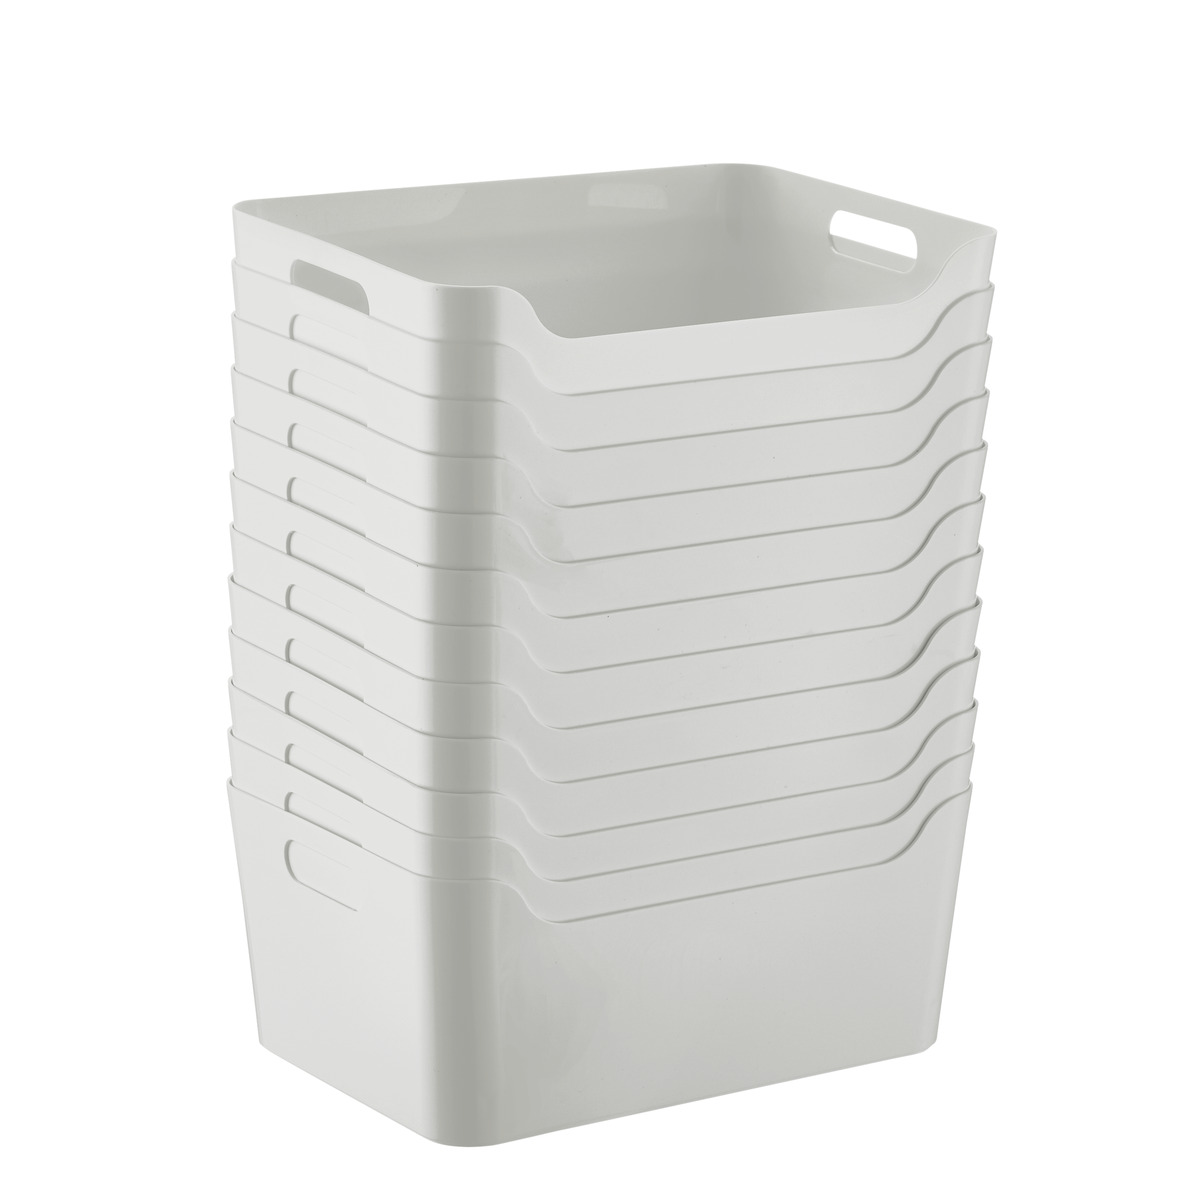 Case of 12 of Smoke Light Grey Storage Bins with Handles